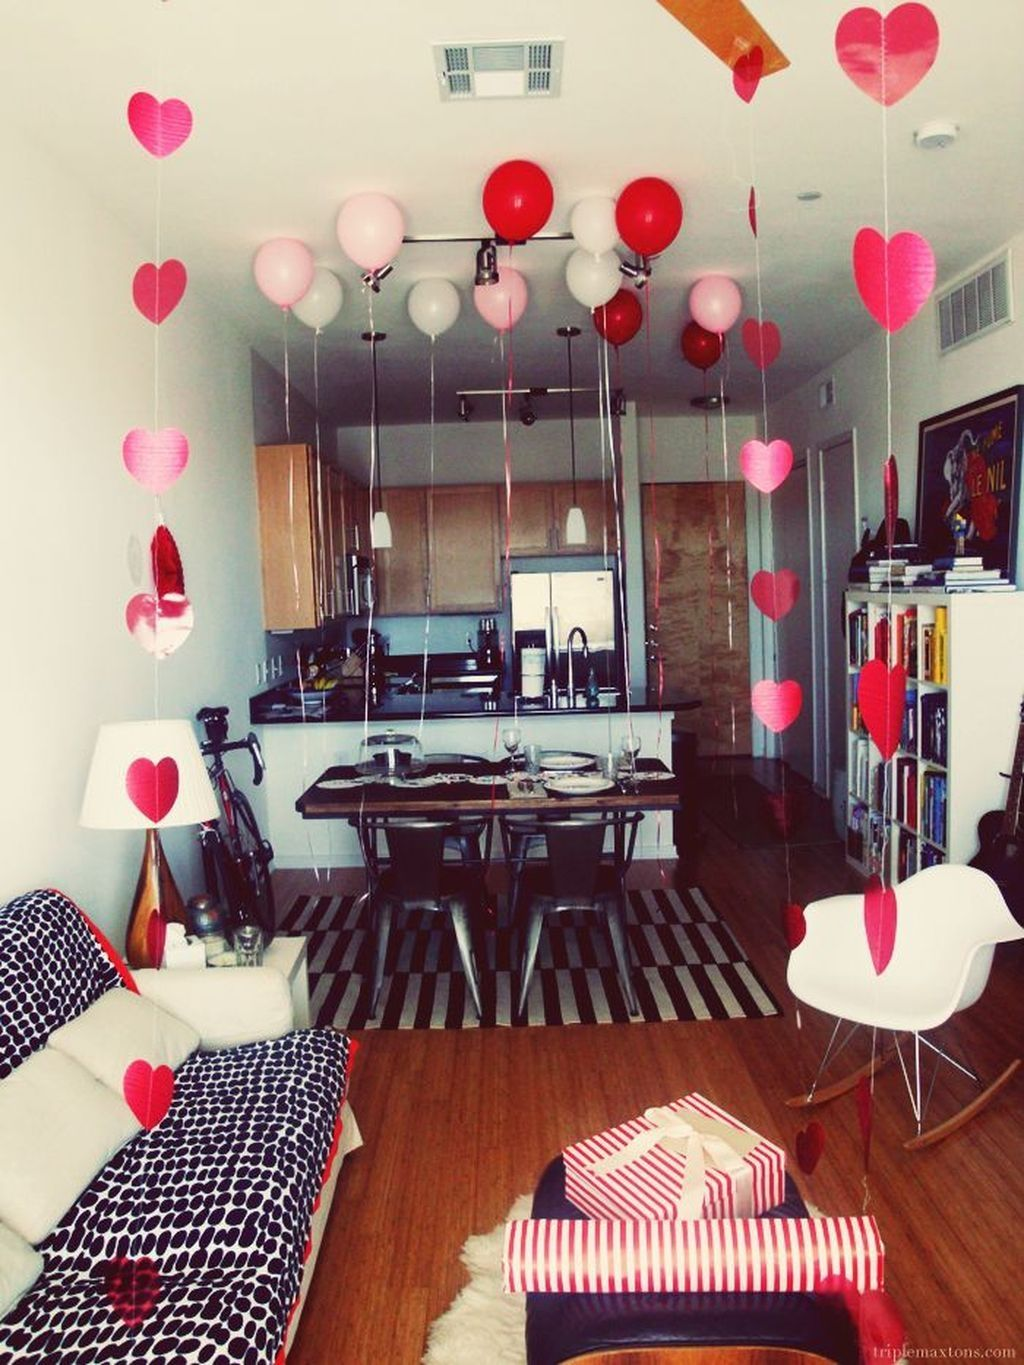 Your valentine   day should be remarkable and leave an unforgettable impression in the mind of also cute decoration ideas for interior design rh pinterest